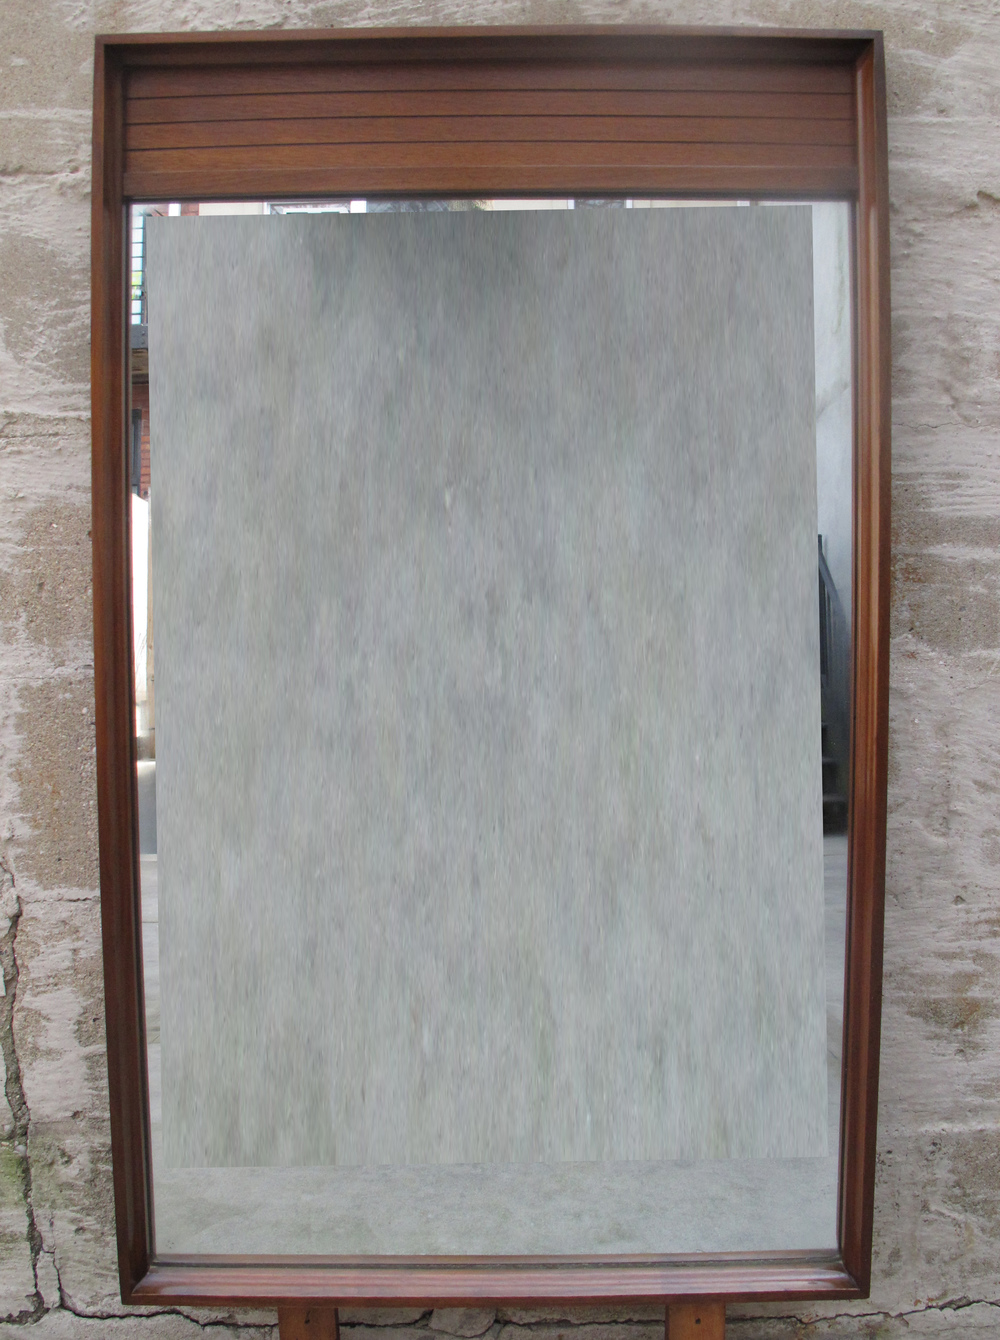 MID CENTURY MIRROR BY JOHNSON CARPER